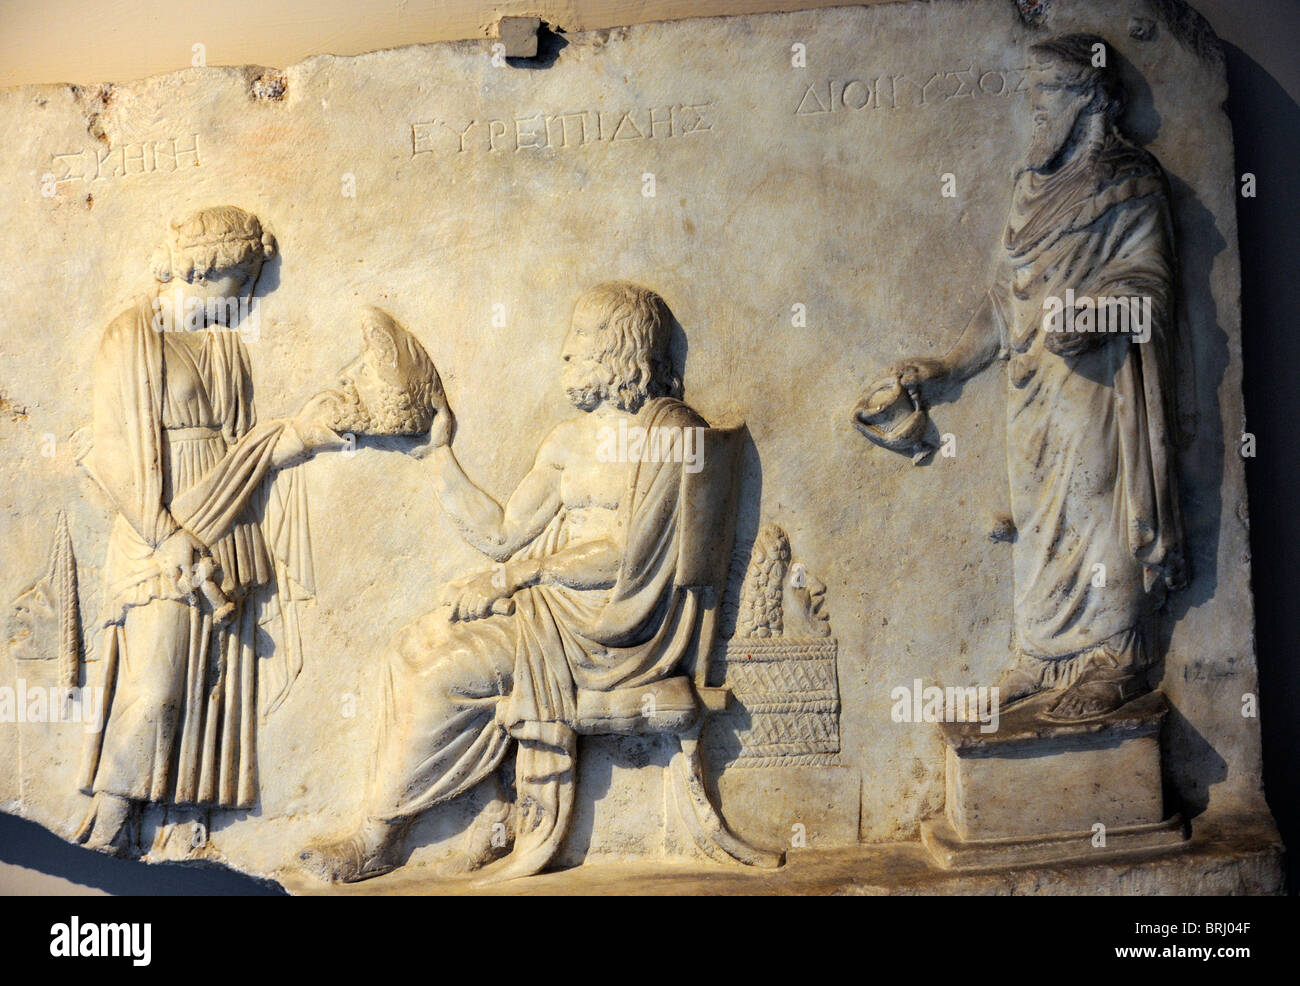 Relief for the honour of the tragedy writer Euripides from Smyrna late 1st Century BC - 1st Century AD - Stock Image